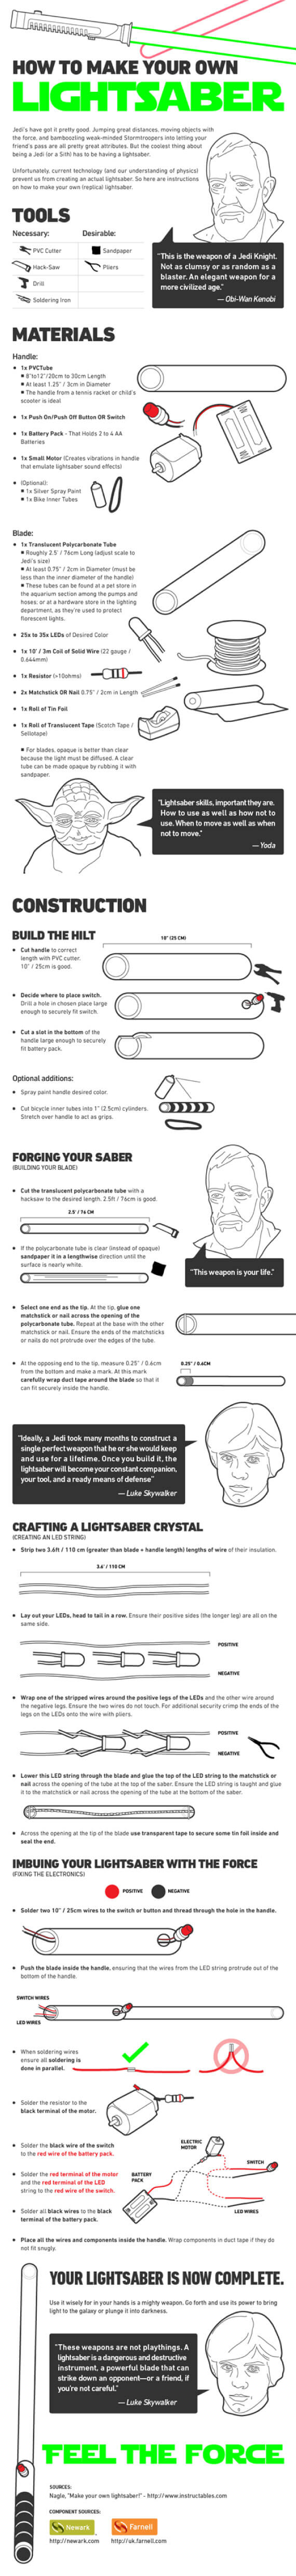 Image titled 'Tips to Make Your Own Lightsaber'